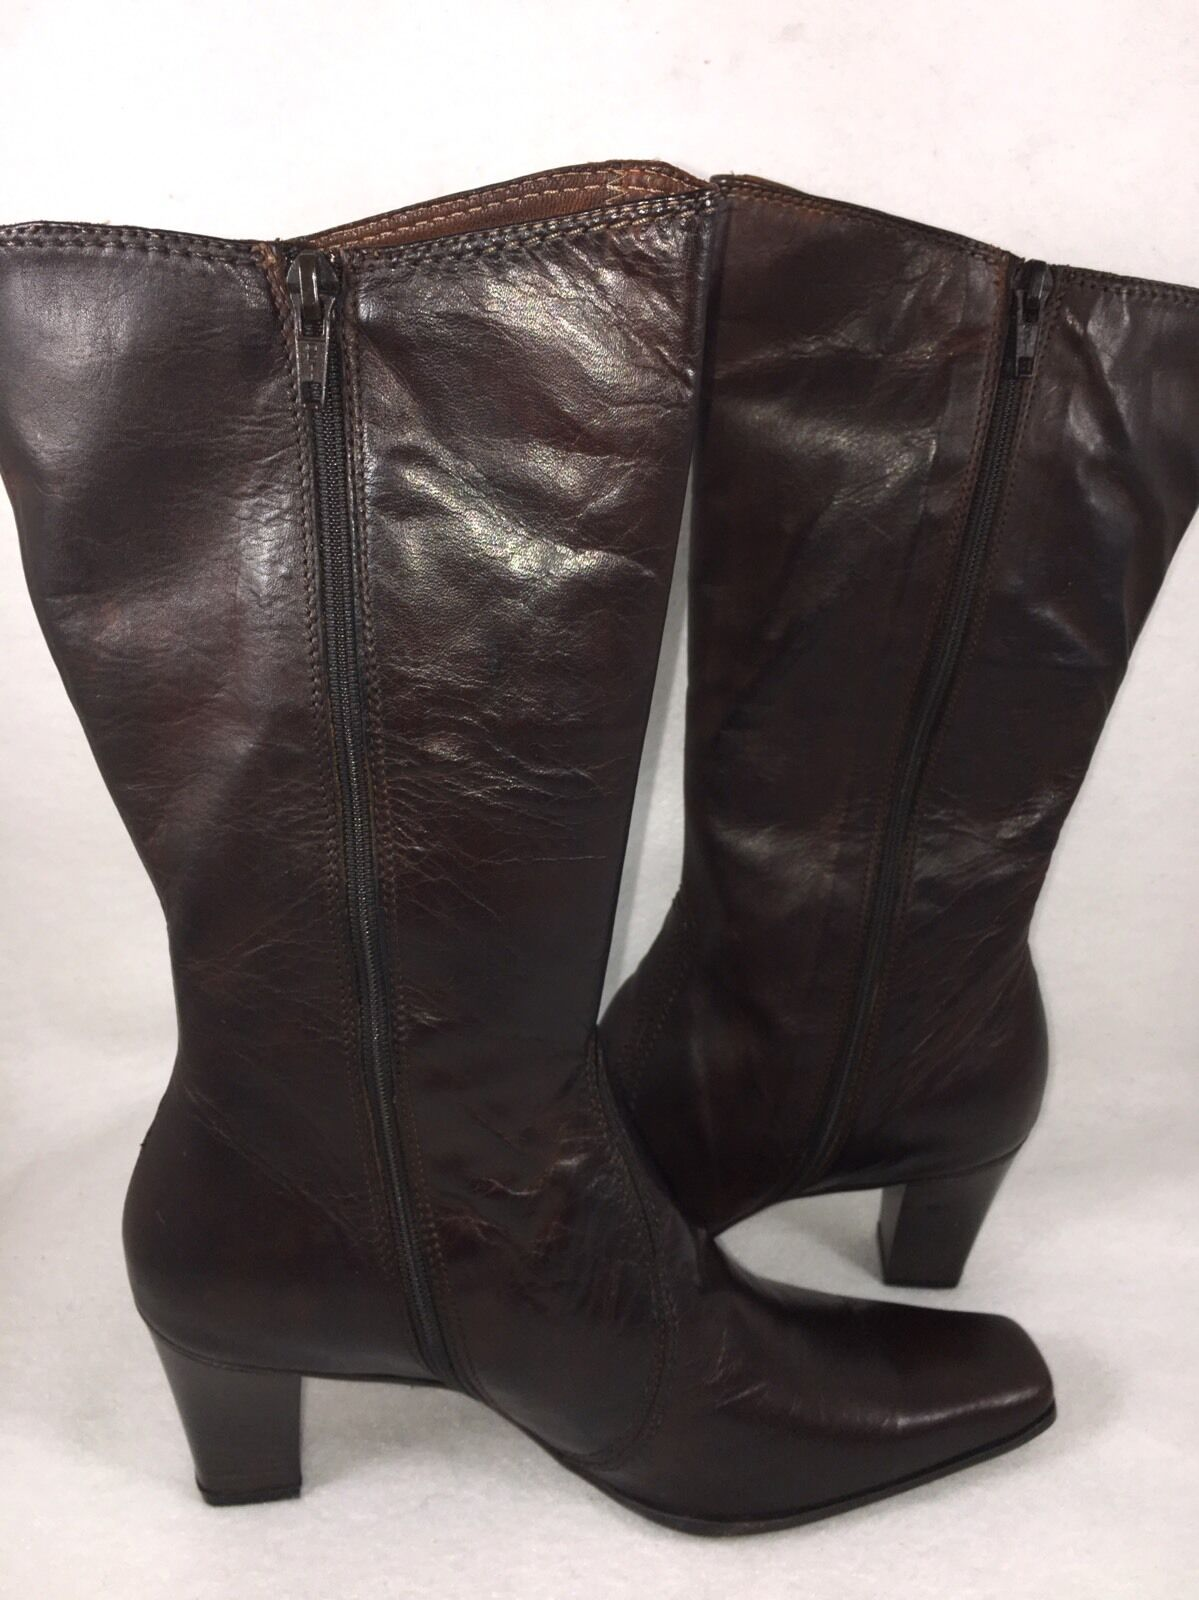 Sesto Meucci Valen Stained Calf Boots 9 N AA AA AA Brown Dark Tan Leather mid calf 16ec60